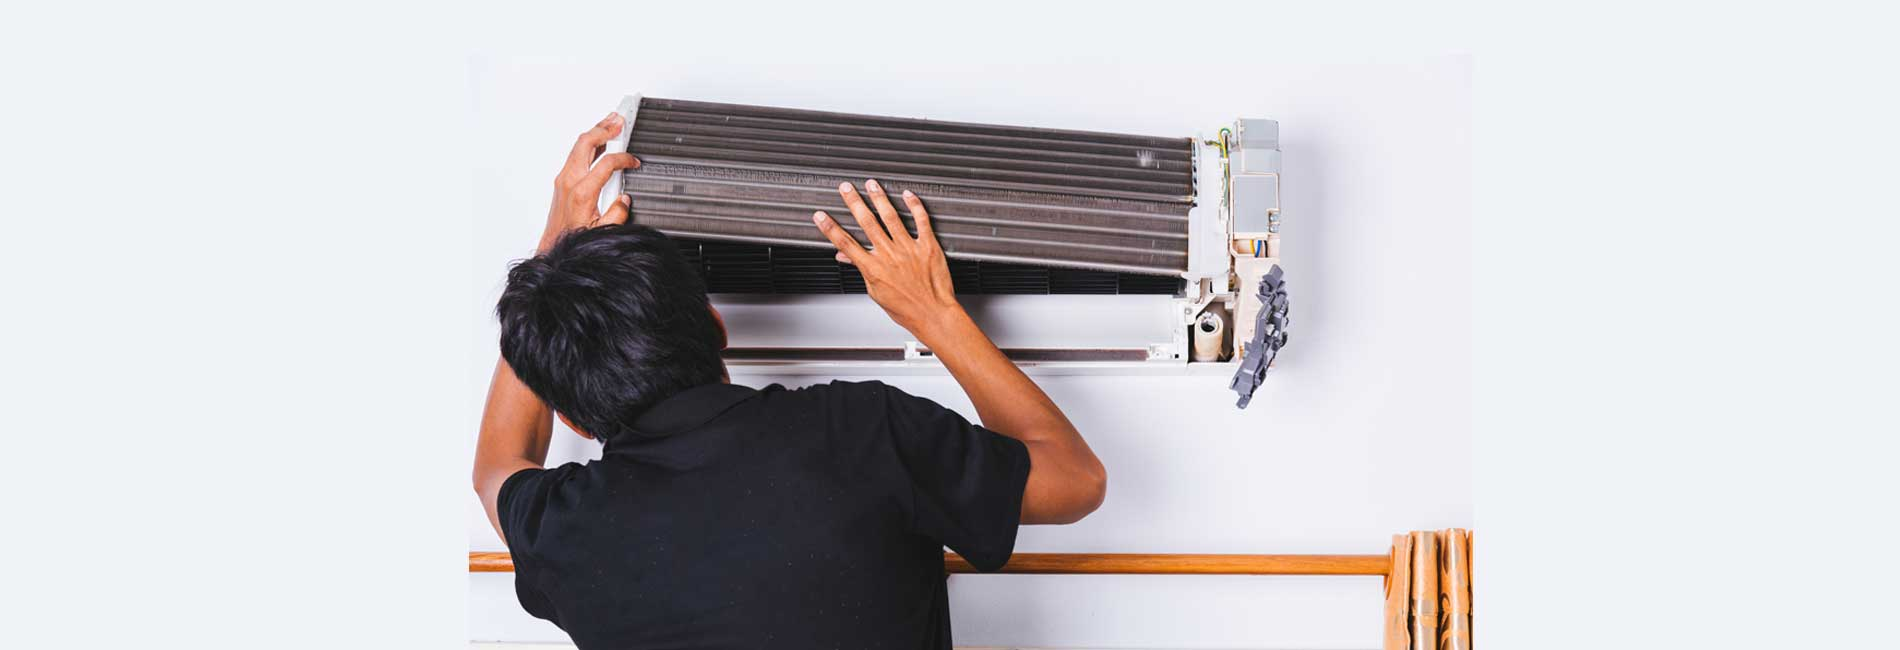 Whirlpool AC Uninstallation and Installation in Kandigai